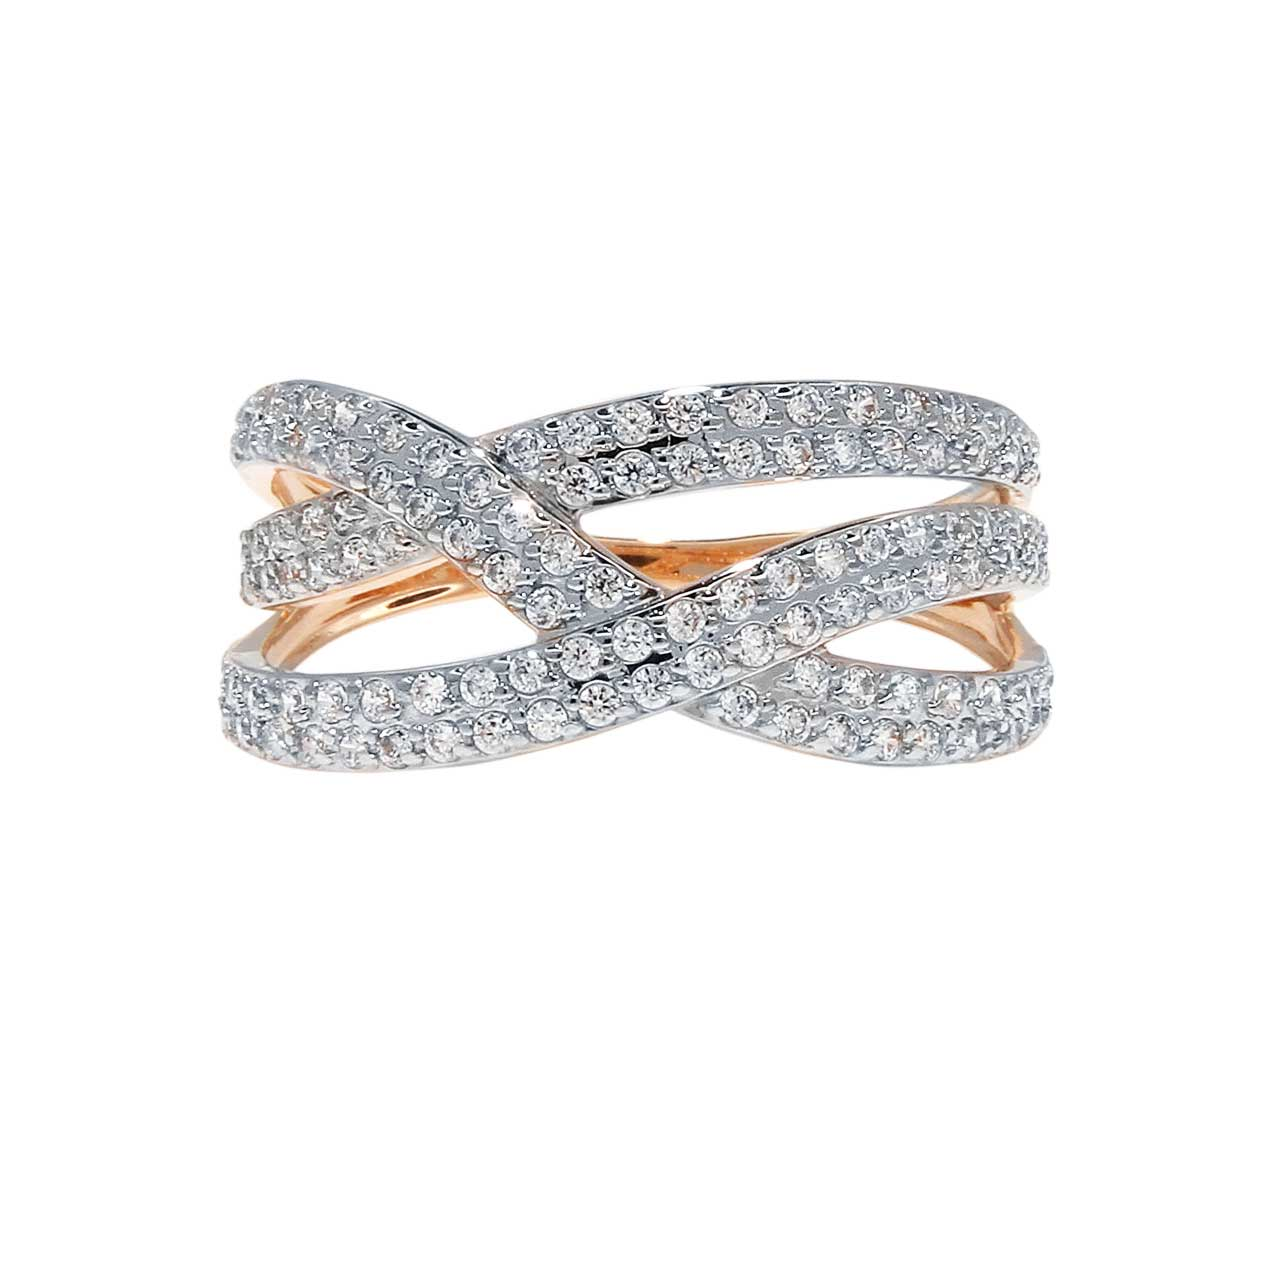 Interwoven CZ Ring 2